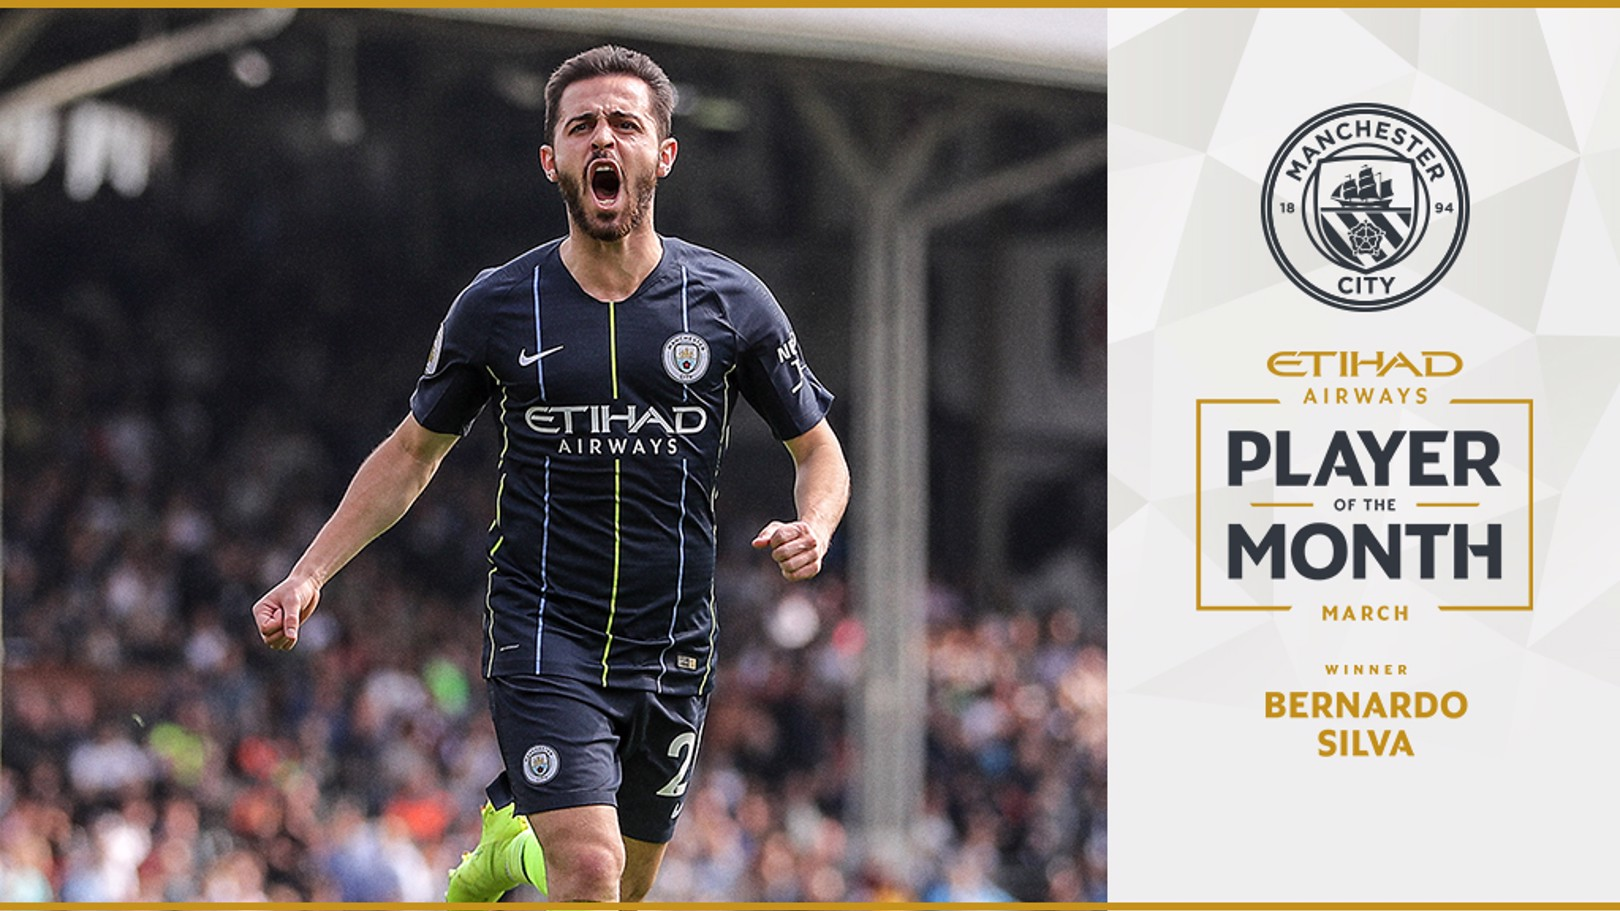 ETIHAD PLAYER OF THE MONTH: Bernardo Silva